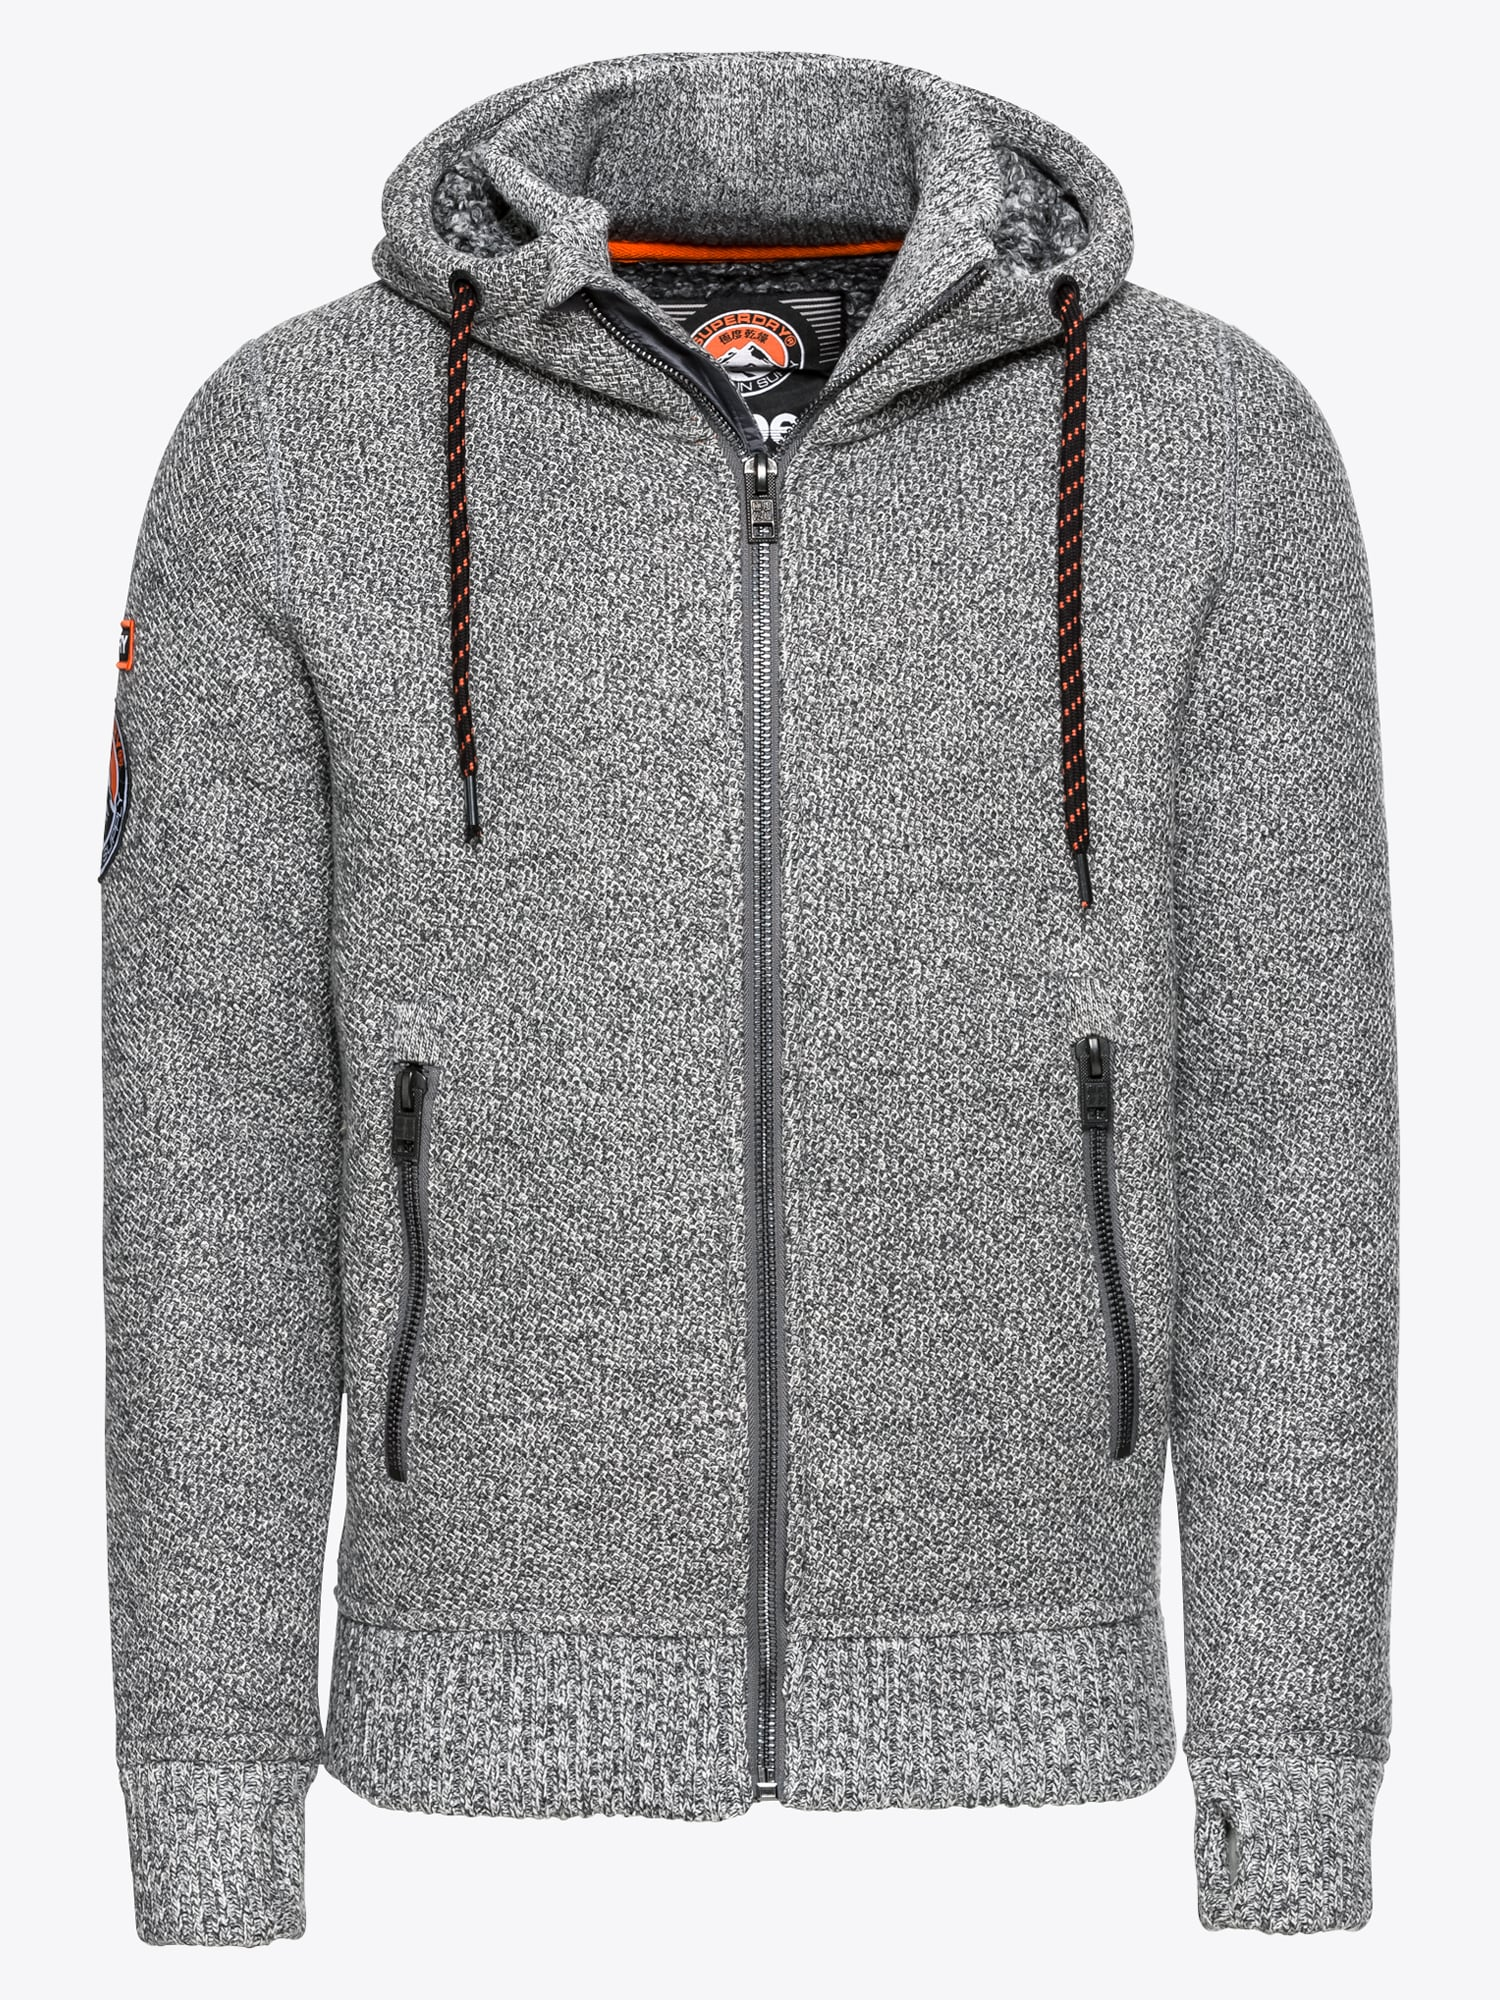 info for 1cdb1 1cafd AboutYou | SALE Herren Superdry Jacke EXPEDITION grau ...